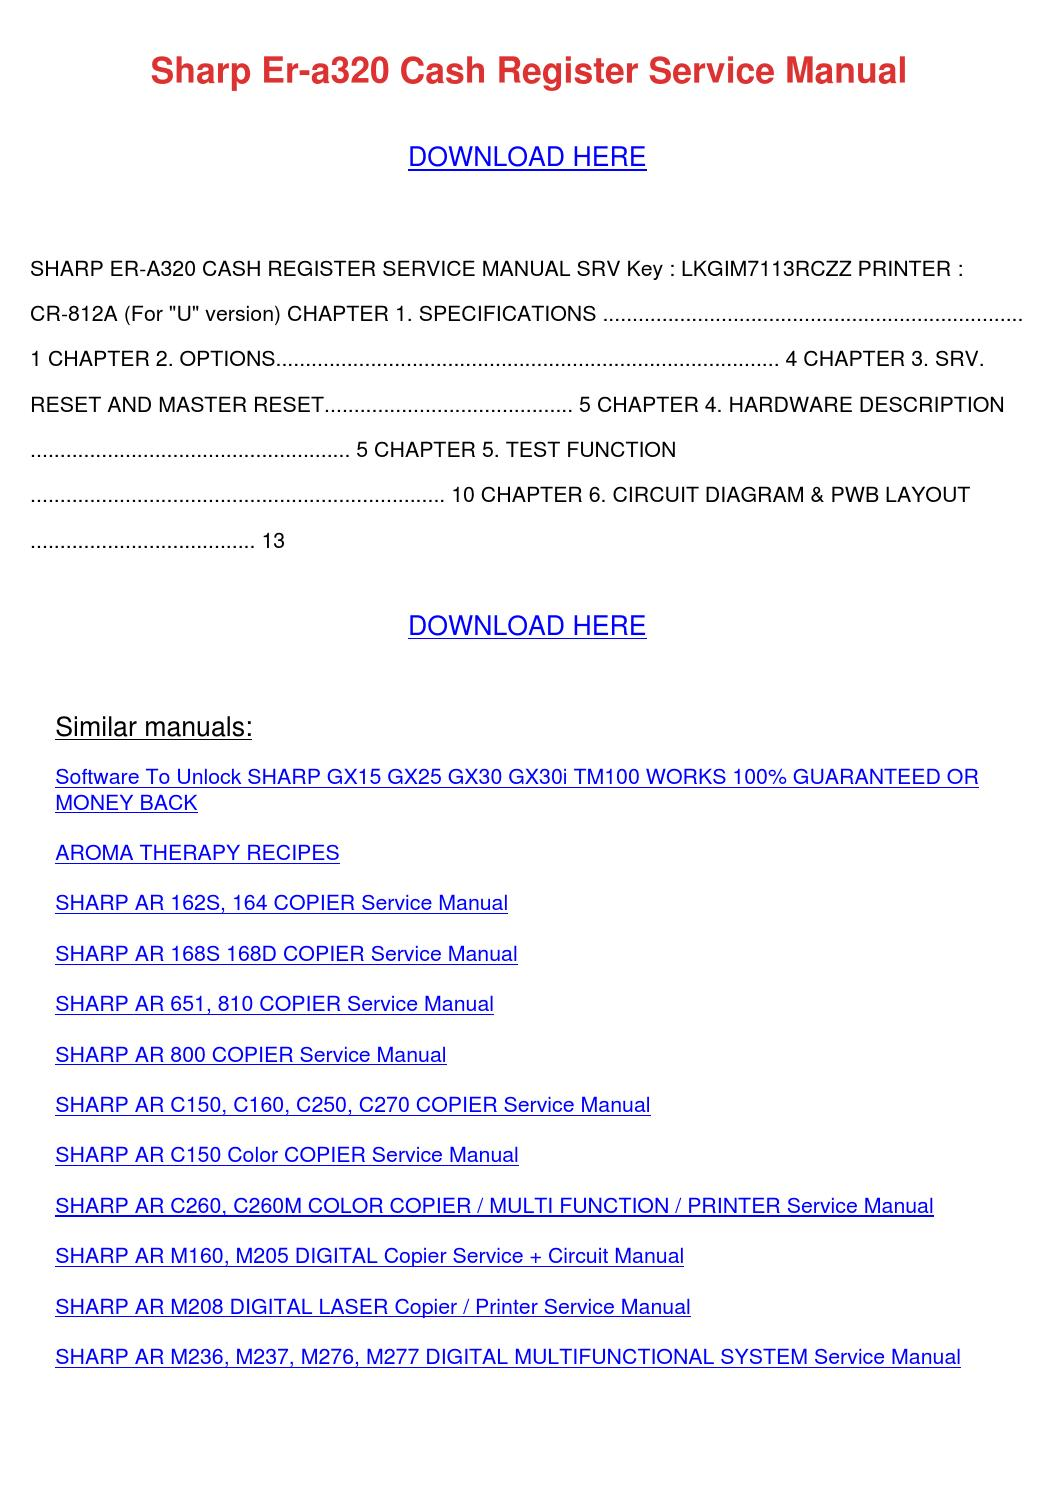 Sharp Er A320 Cash Register Service Manual By